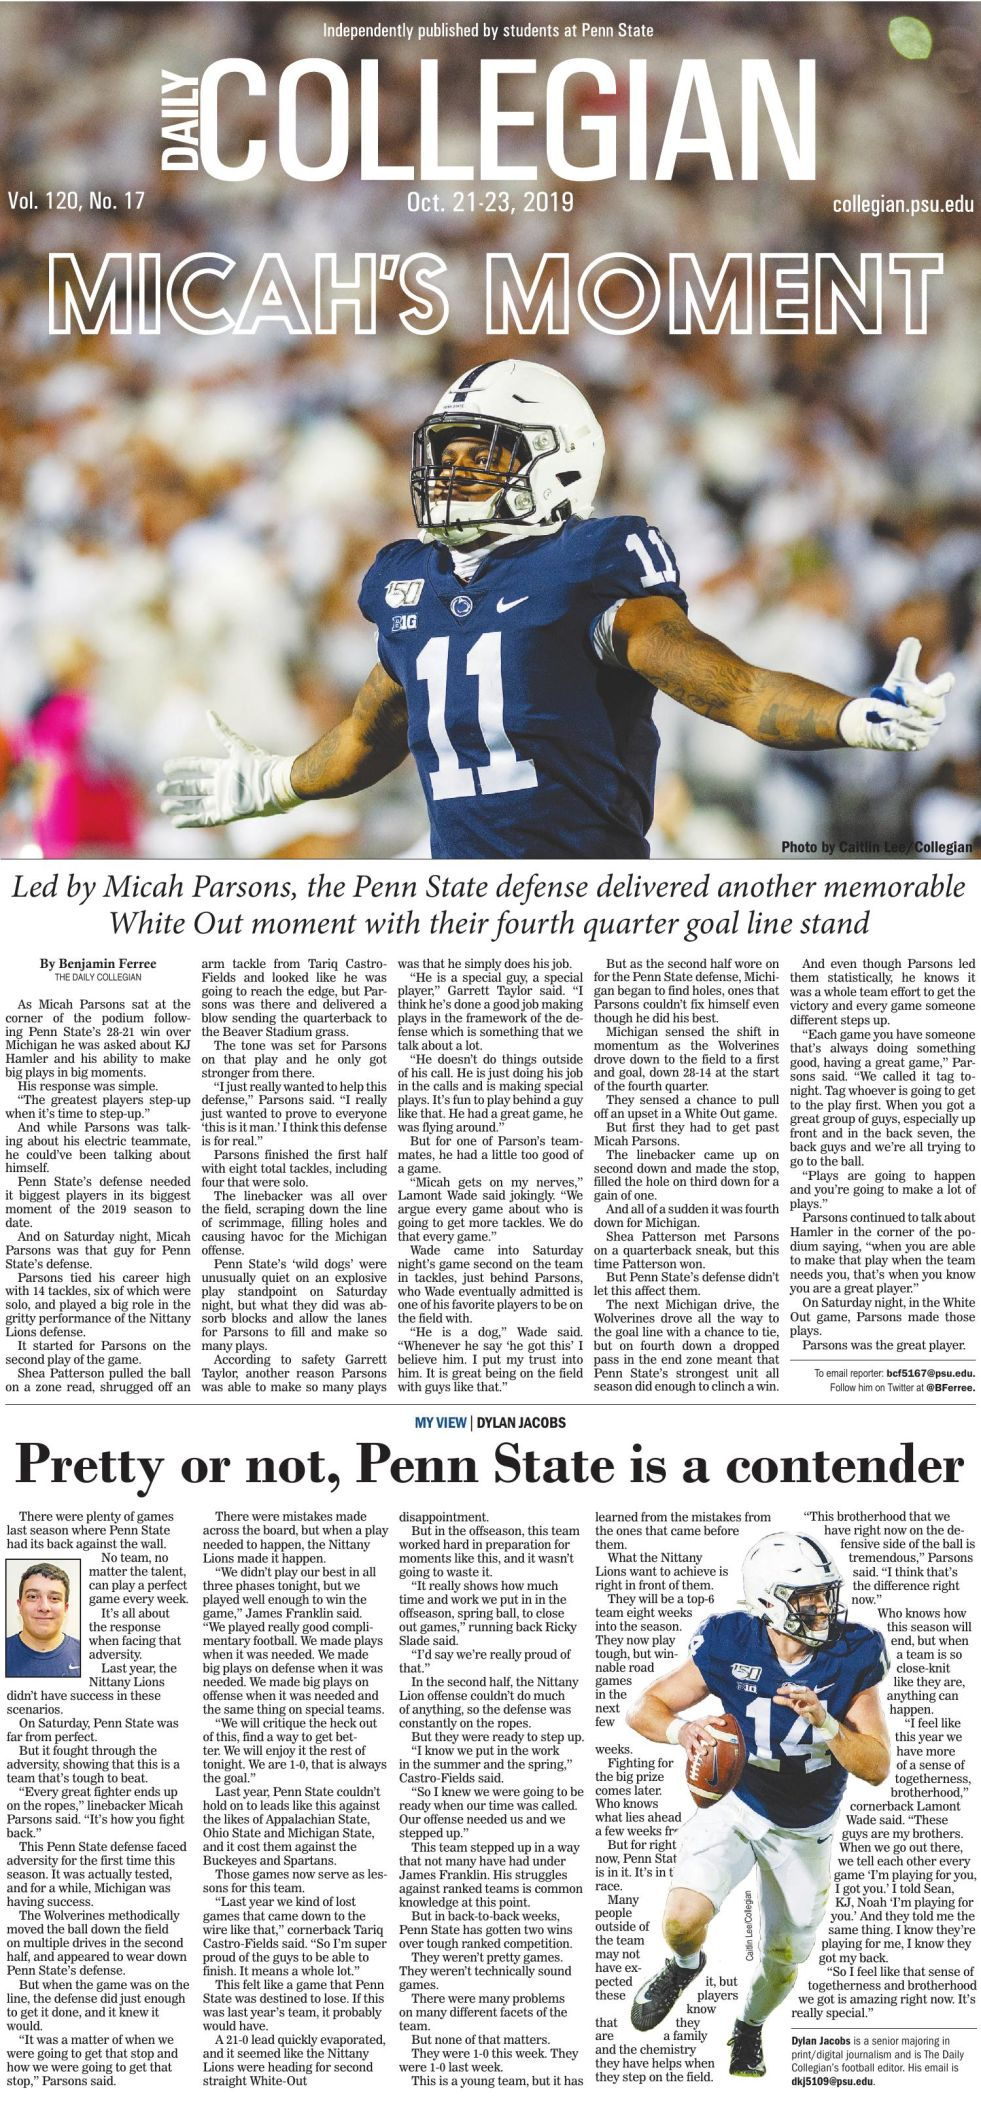 The Daily Collegian for Oct. 21, 2019